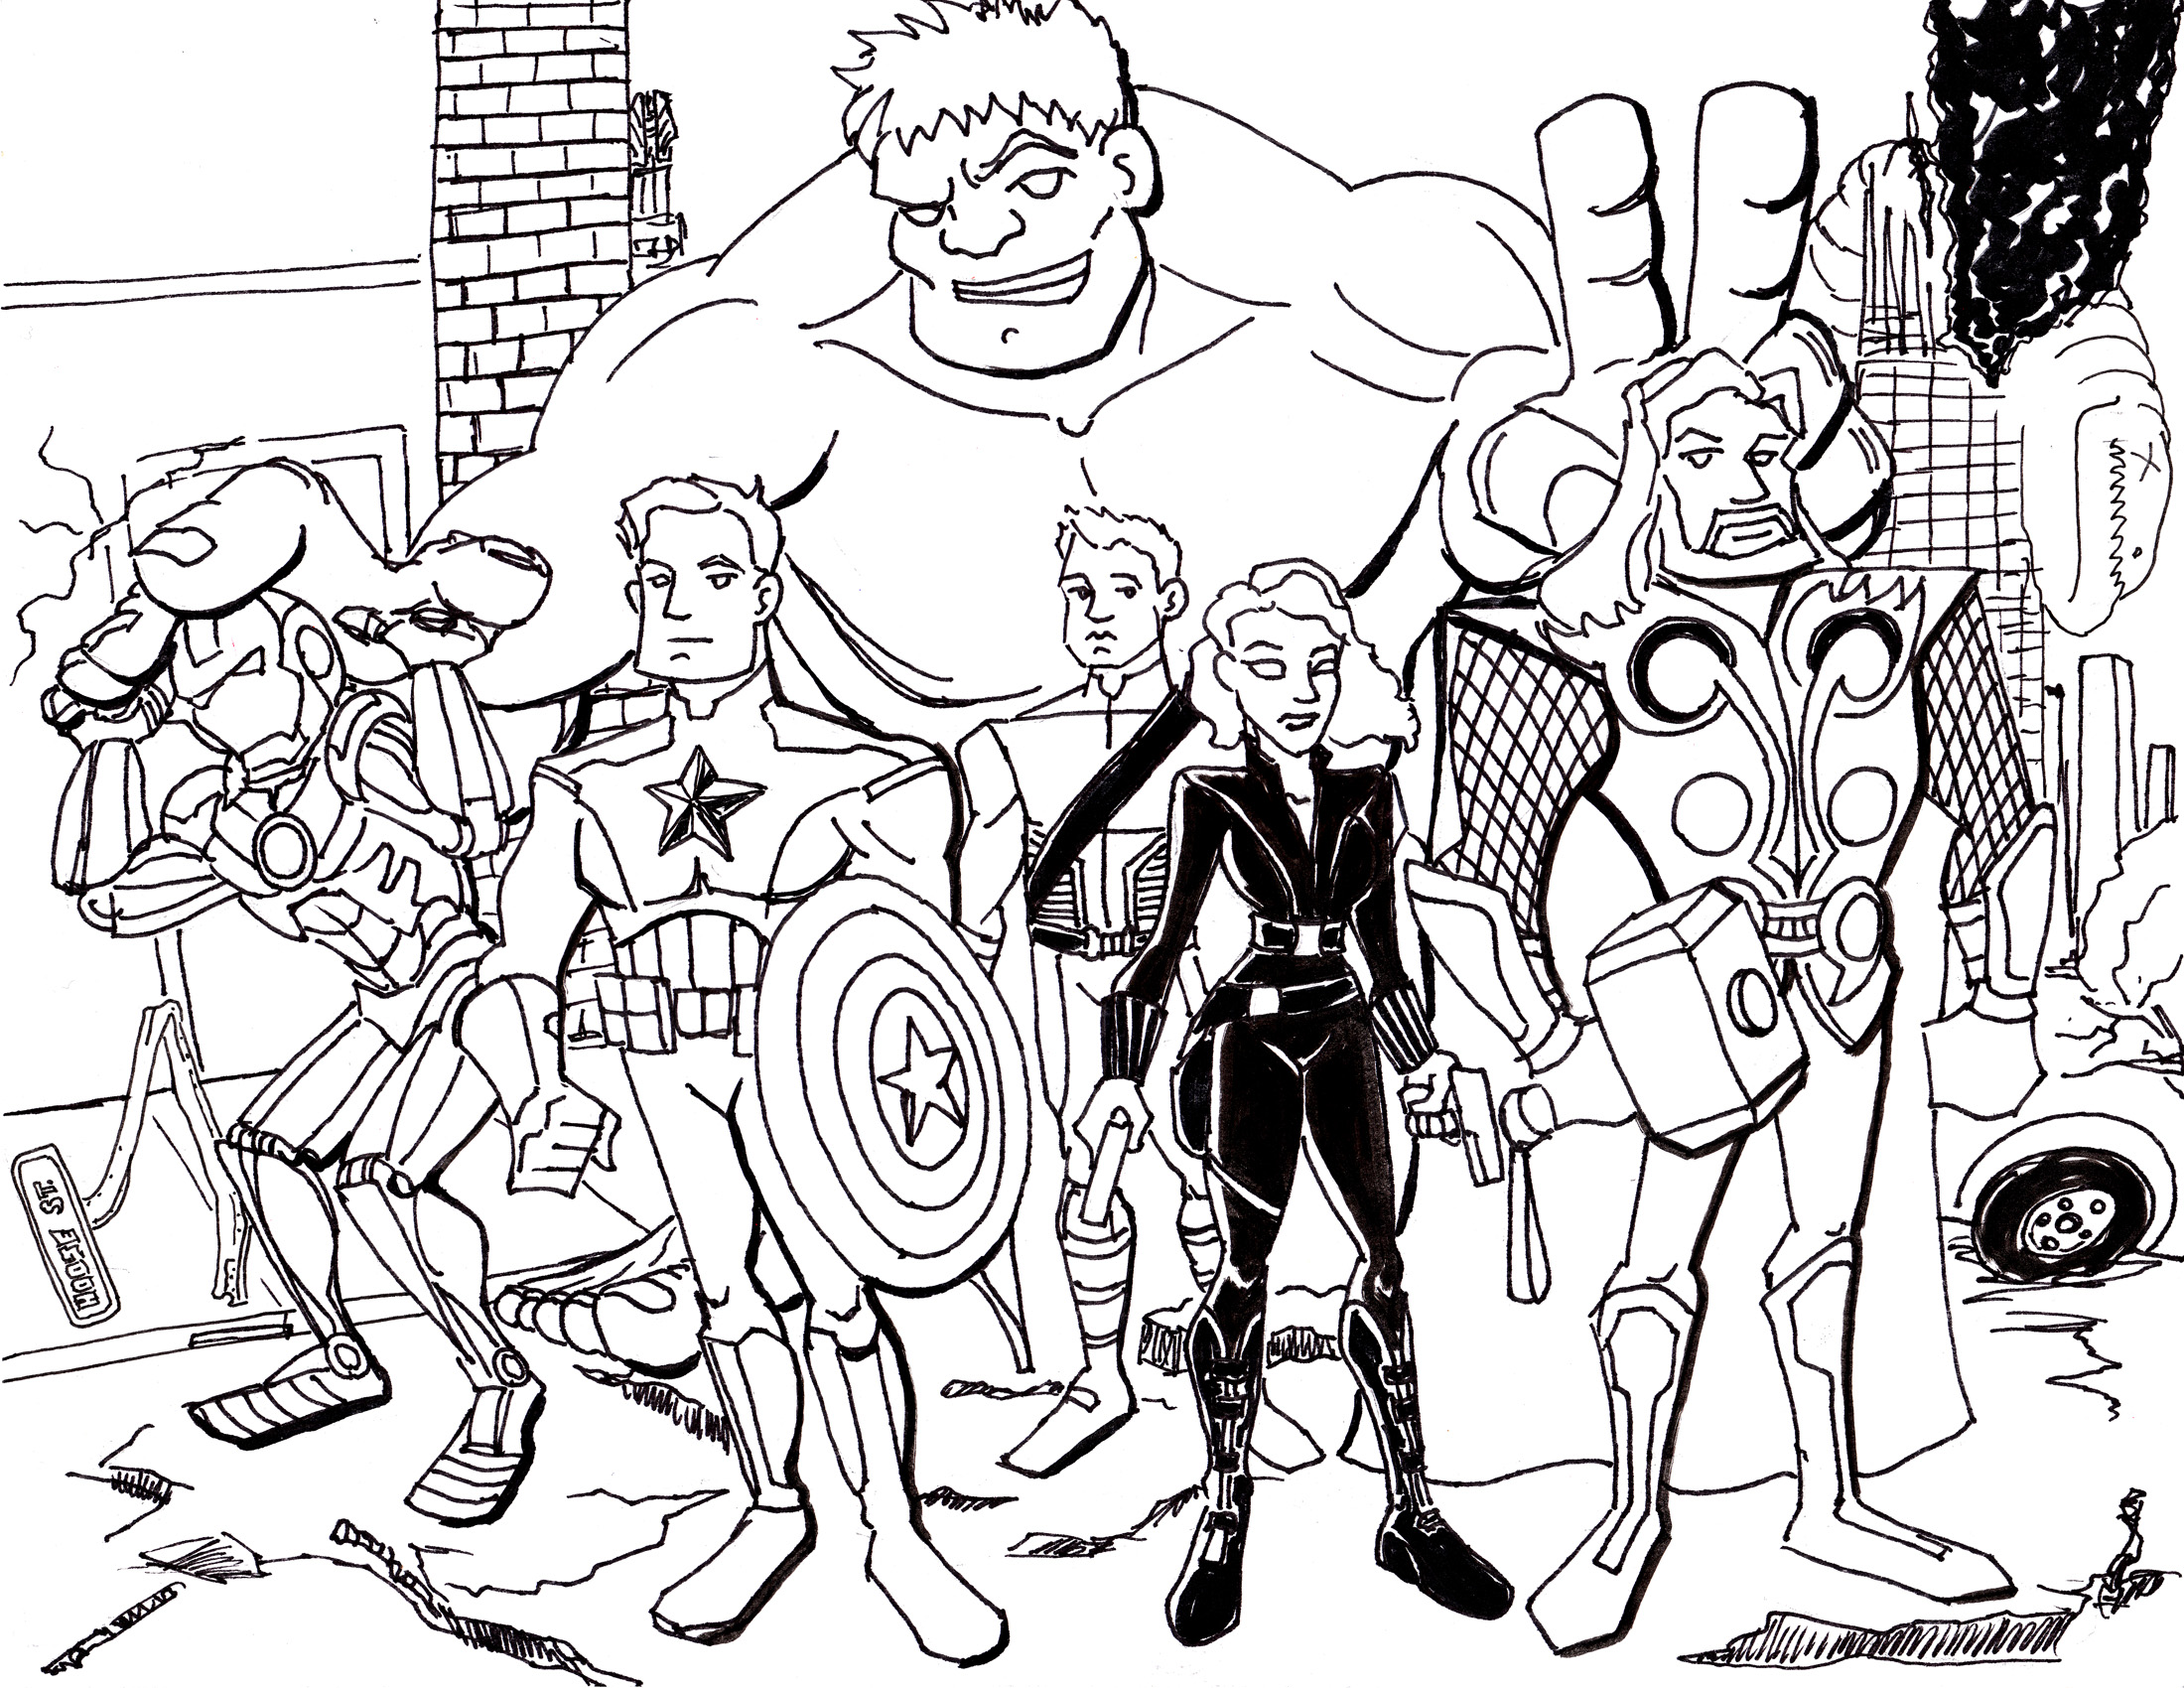 graphic regarding Avengers Coloring Pages Printable named Avengers Coloring Web pages - Great Coloring Web pages For Young children